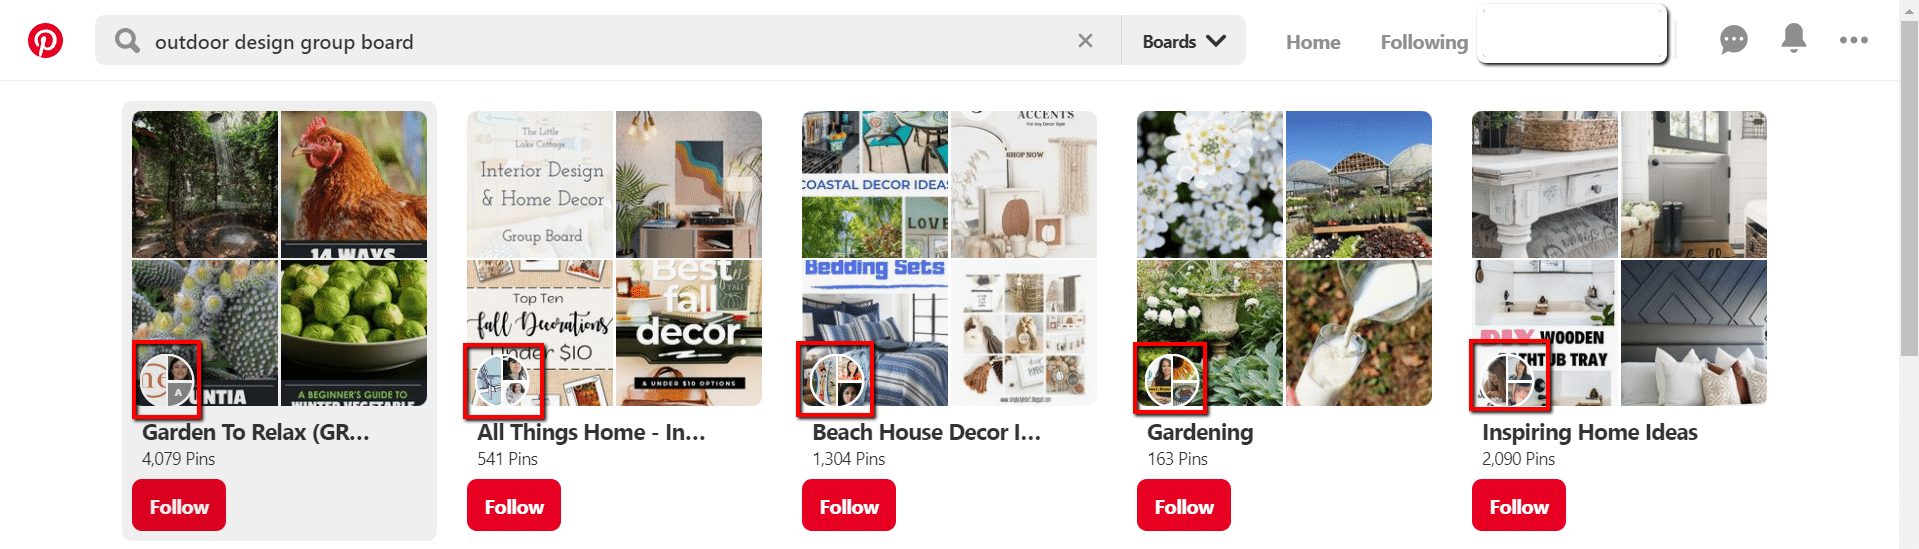 pinterest finding group boards